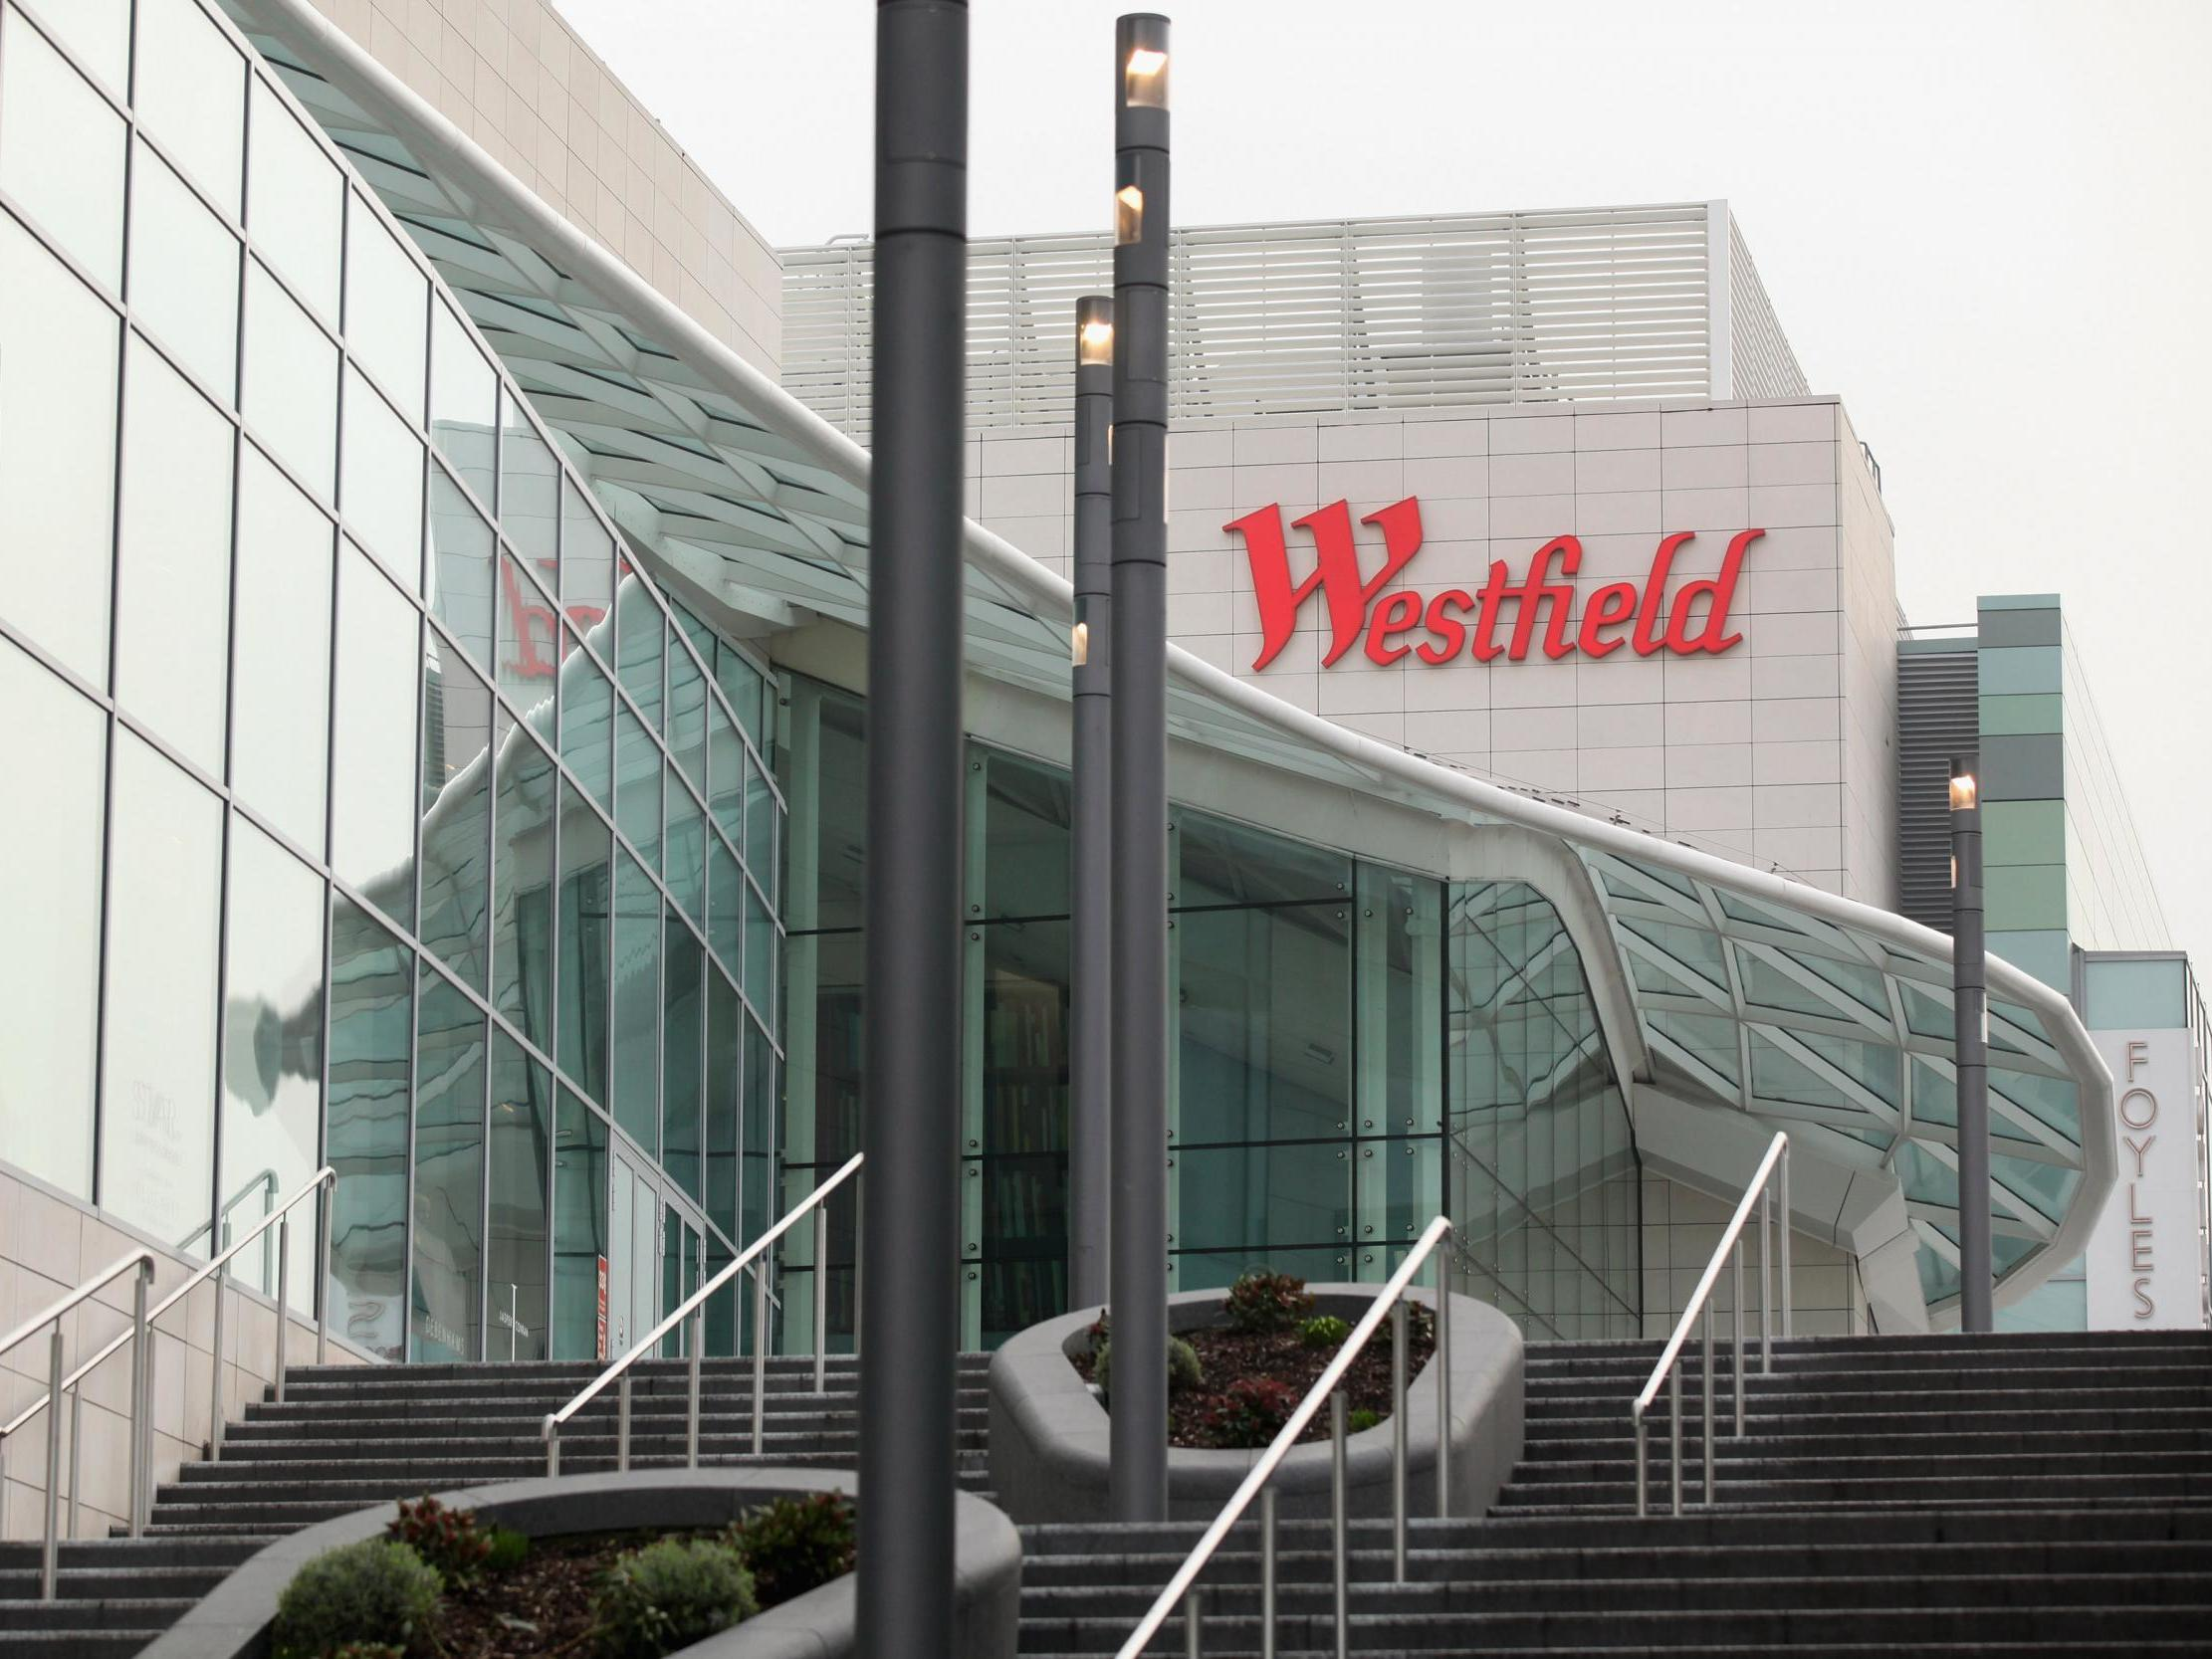 Westfield stabbing: Man left with multiple injuries after attack in west London shopping centre